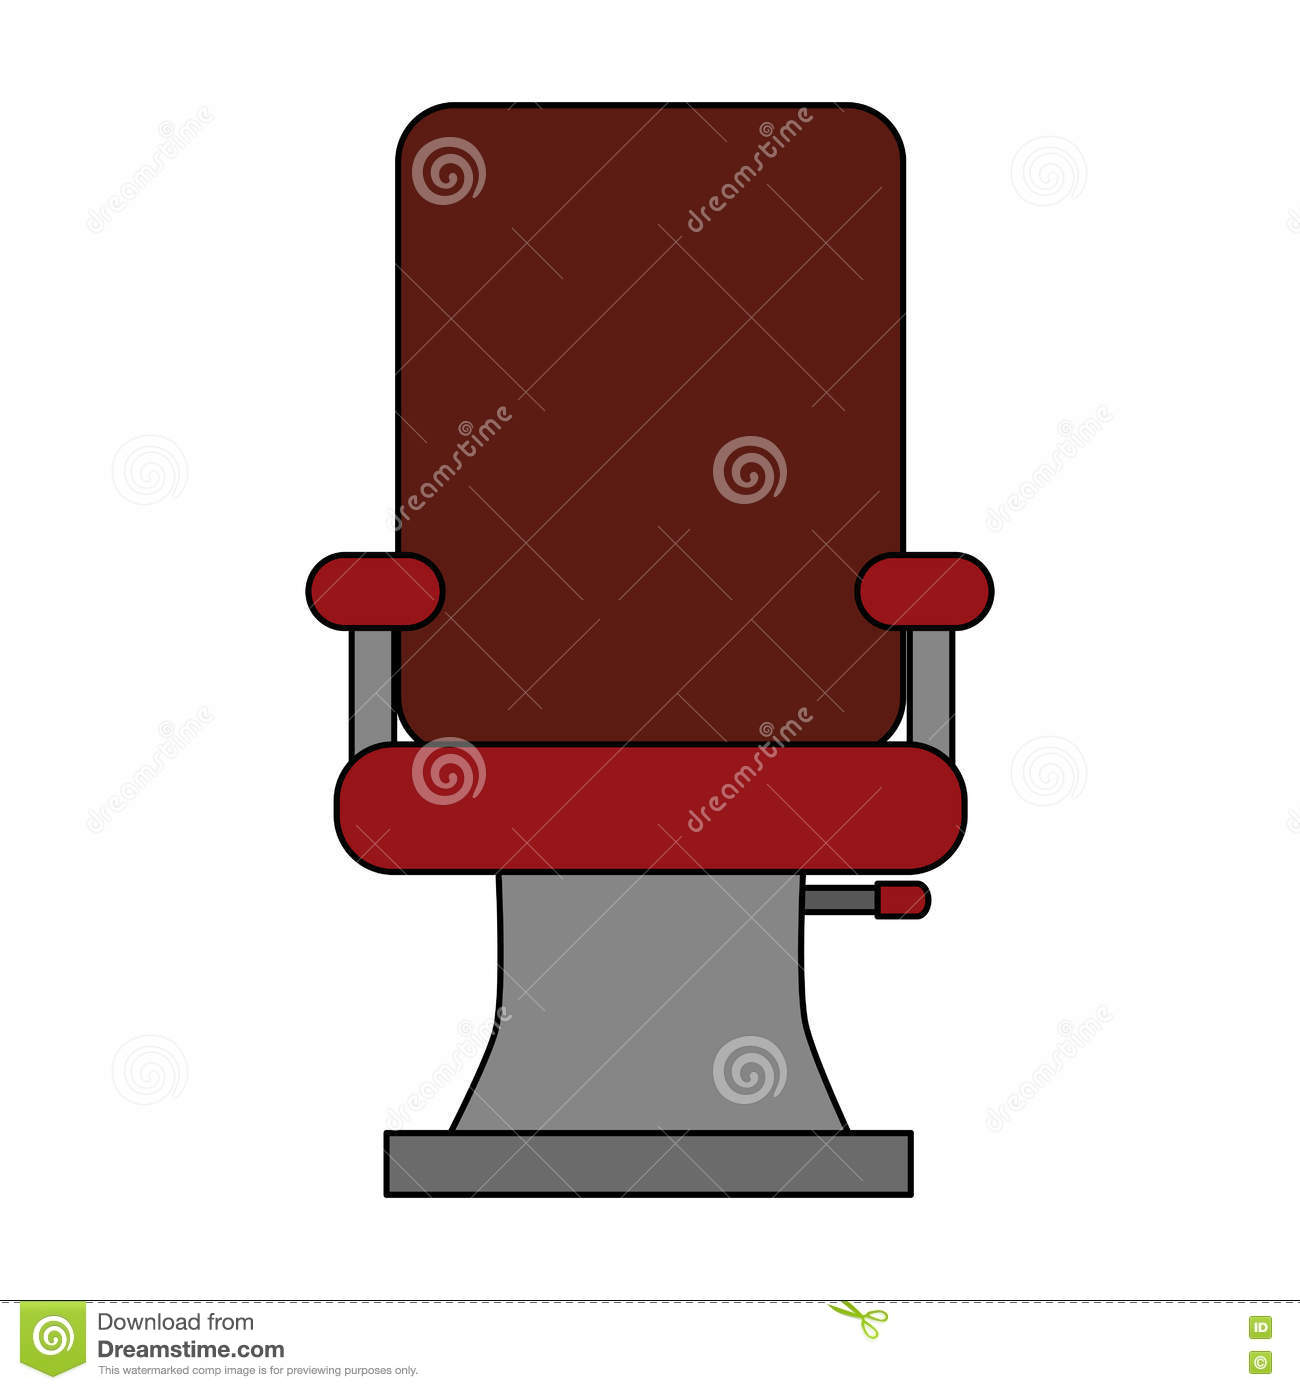 Hair salon chair isolated stock photos illustrations and vector art - Barbershop Chair Design Illustration